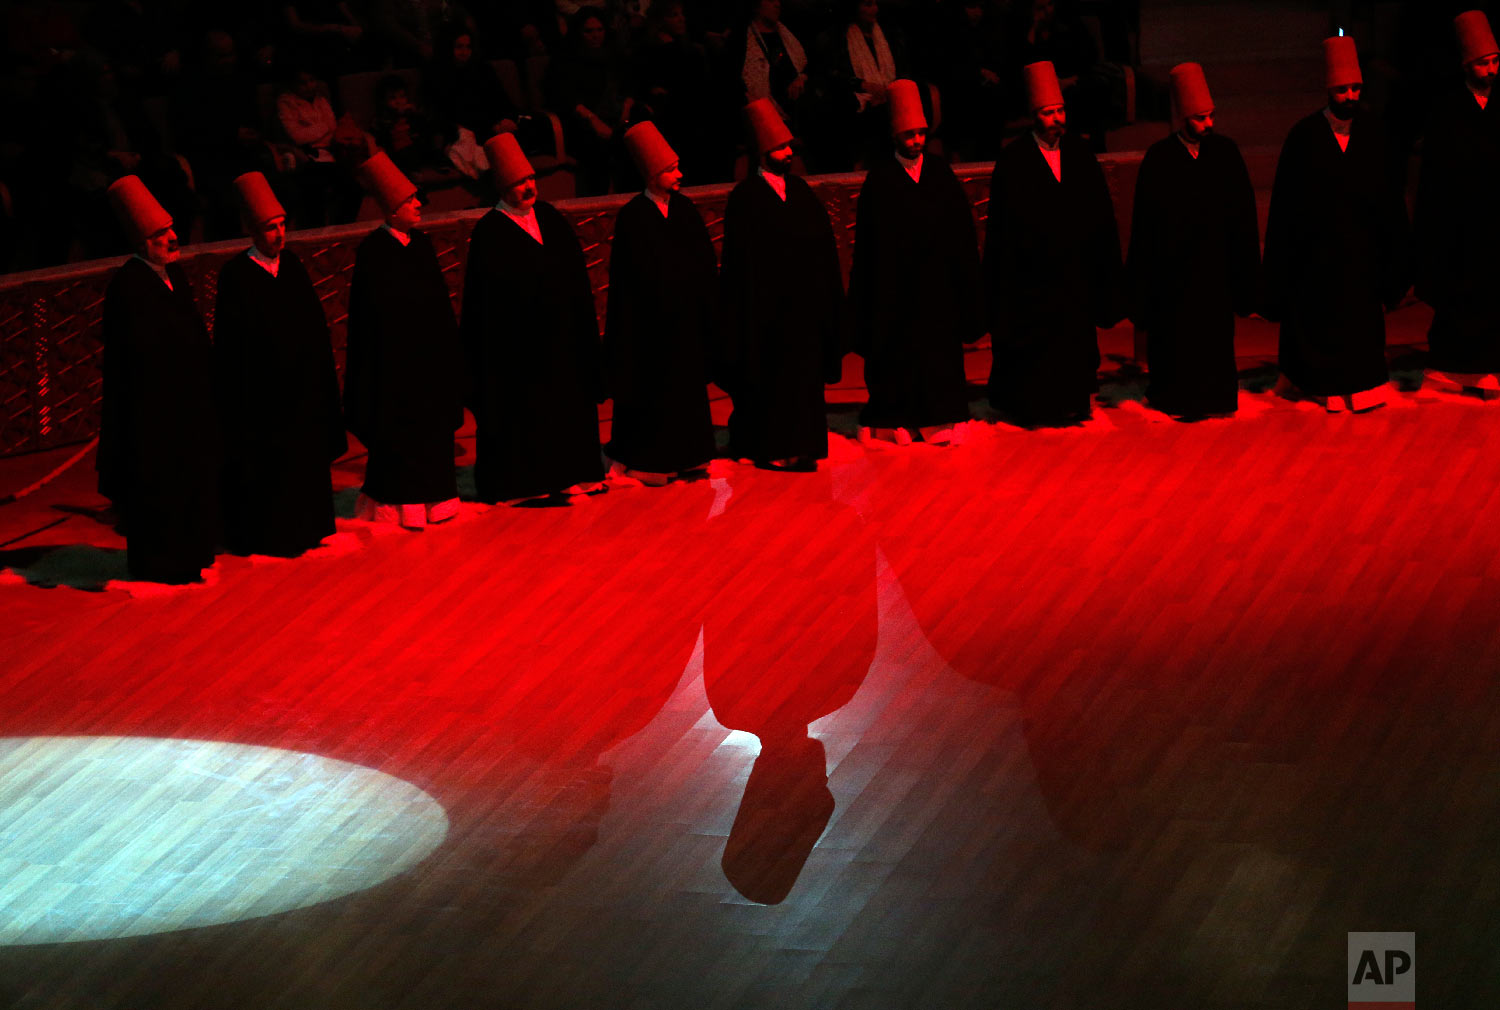 Whirling dervishes of the Mevlevi order stand during a Sheb-i Arus ceremony in Konya, central Turkey, Sunday, Dec. 16, 2018. (AP Photo/Lefteris Pitarakis)